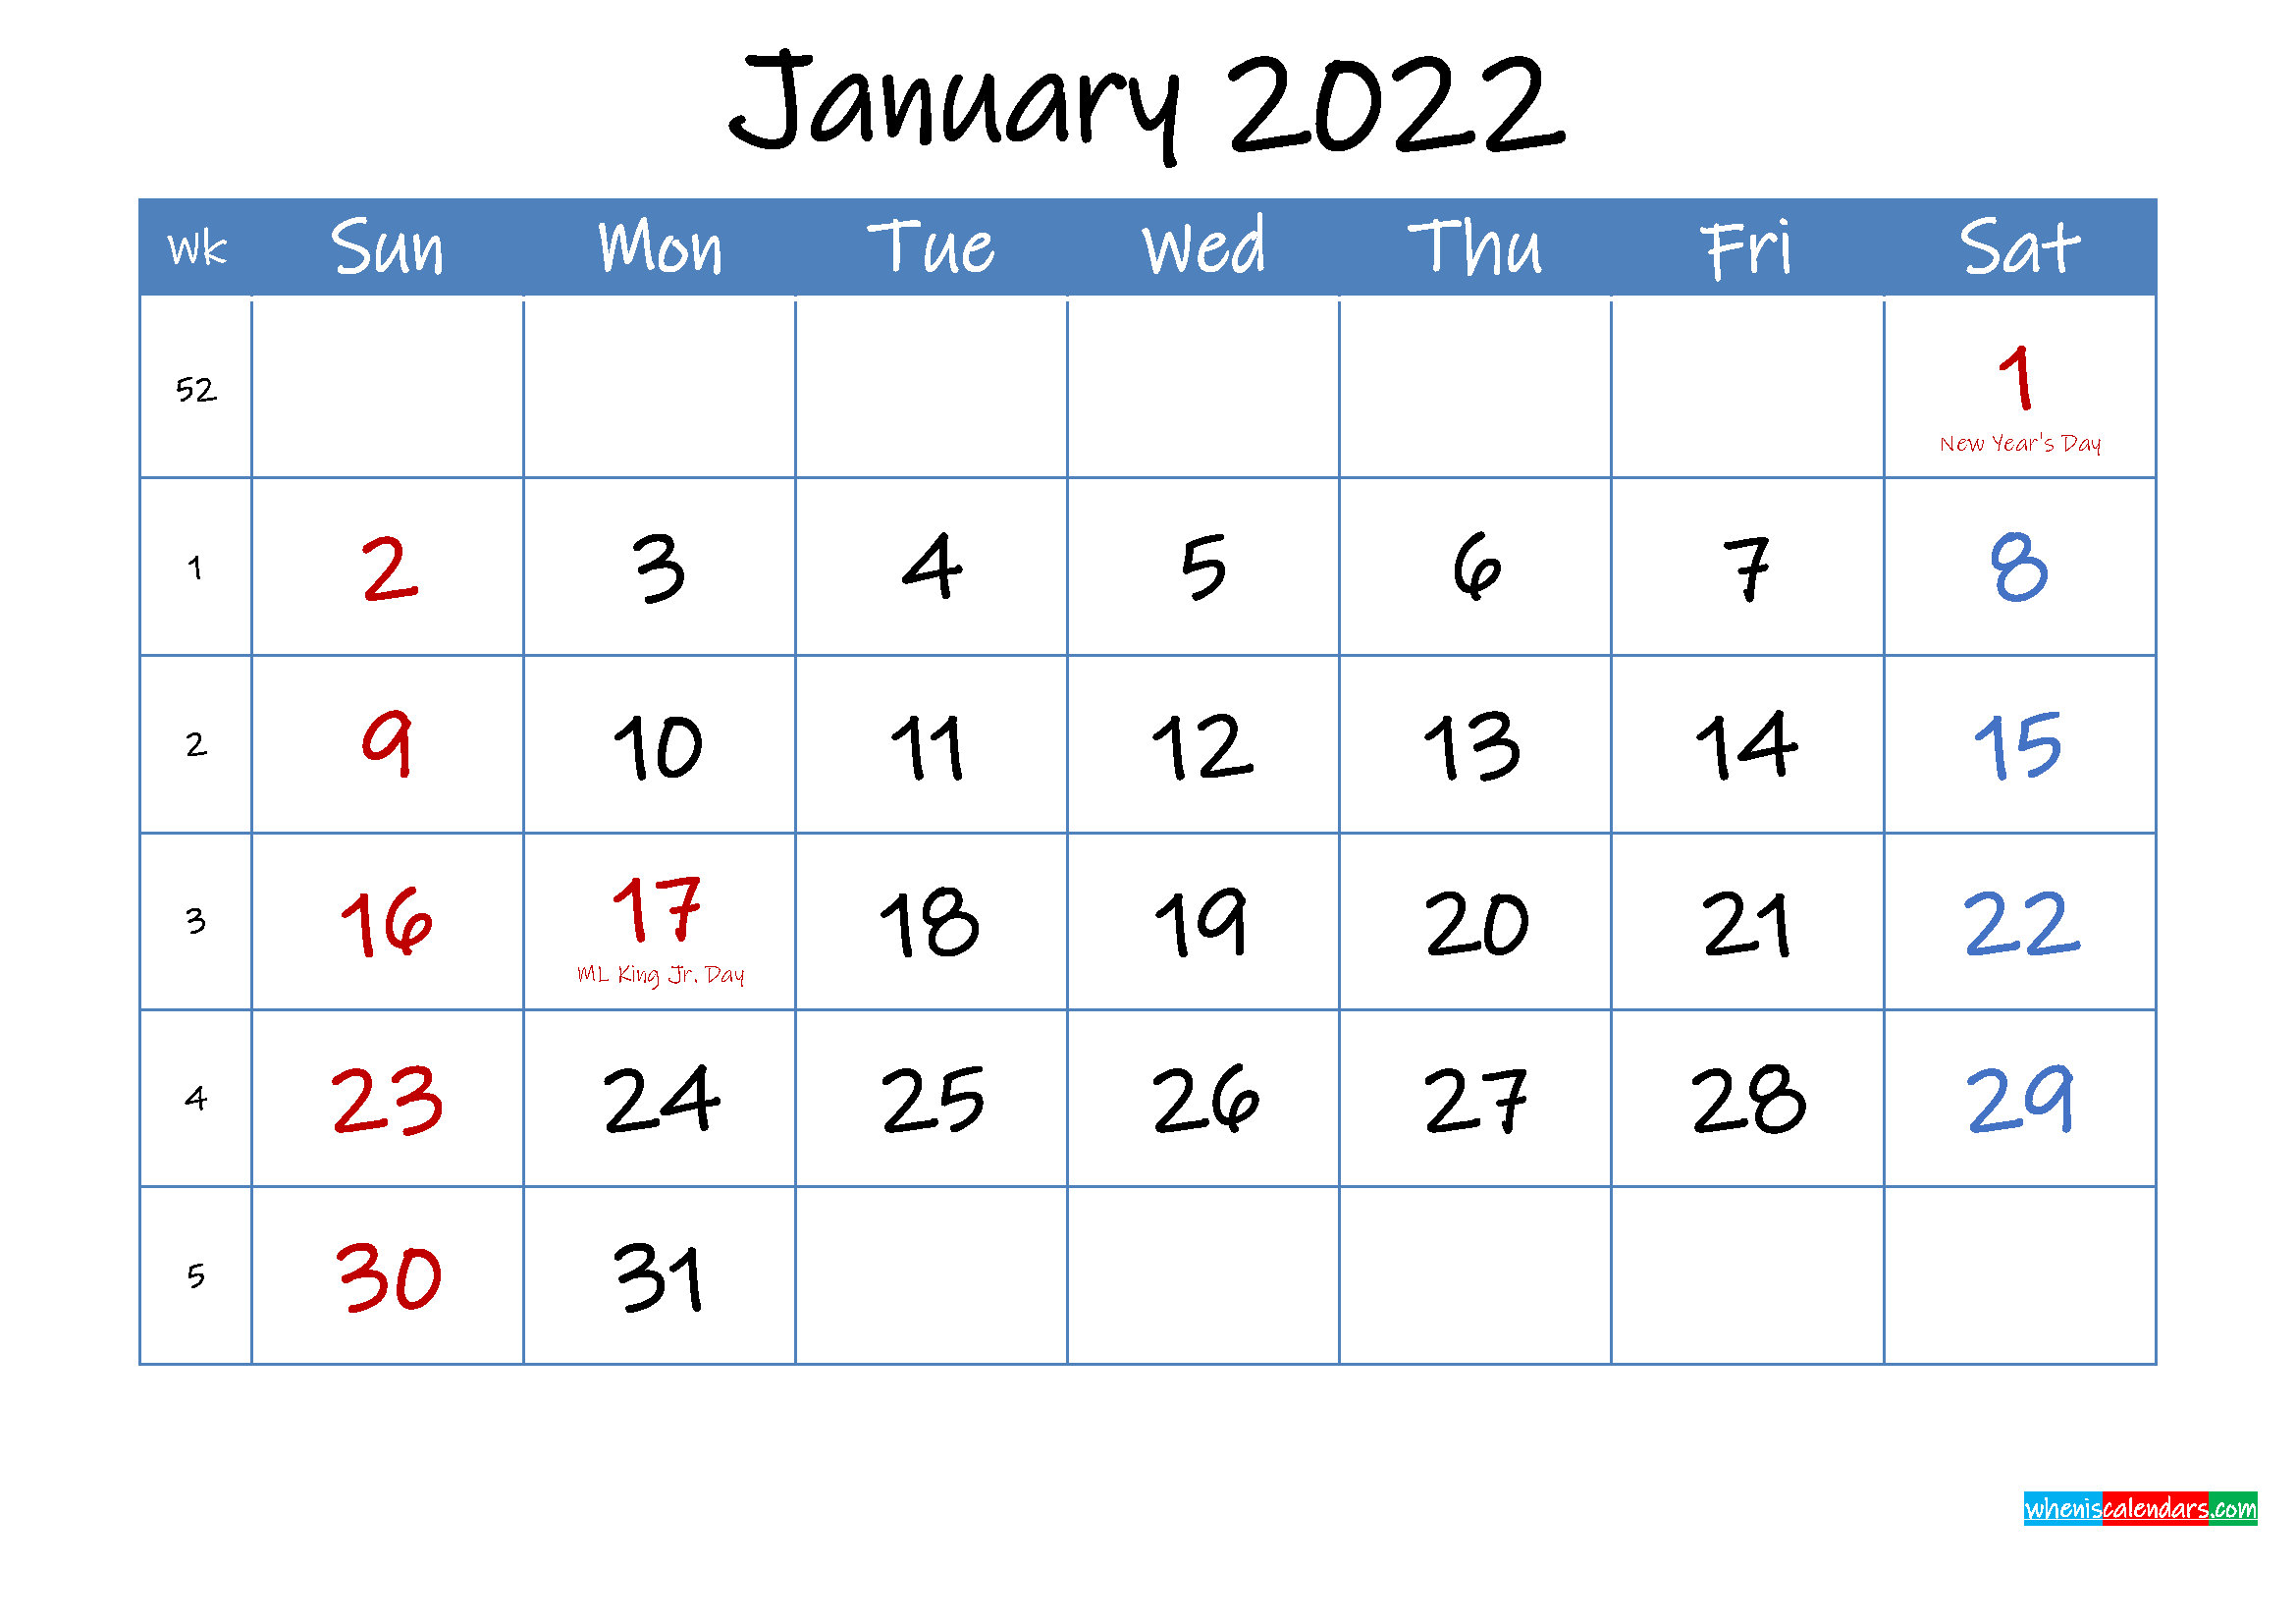 Printable January 2022 Calendar Word – Template Ink22M13 Pertaining To Images Of January 2022 Calendar